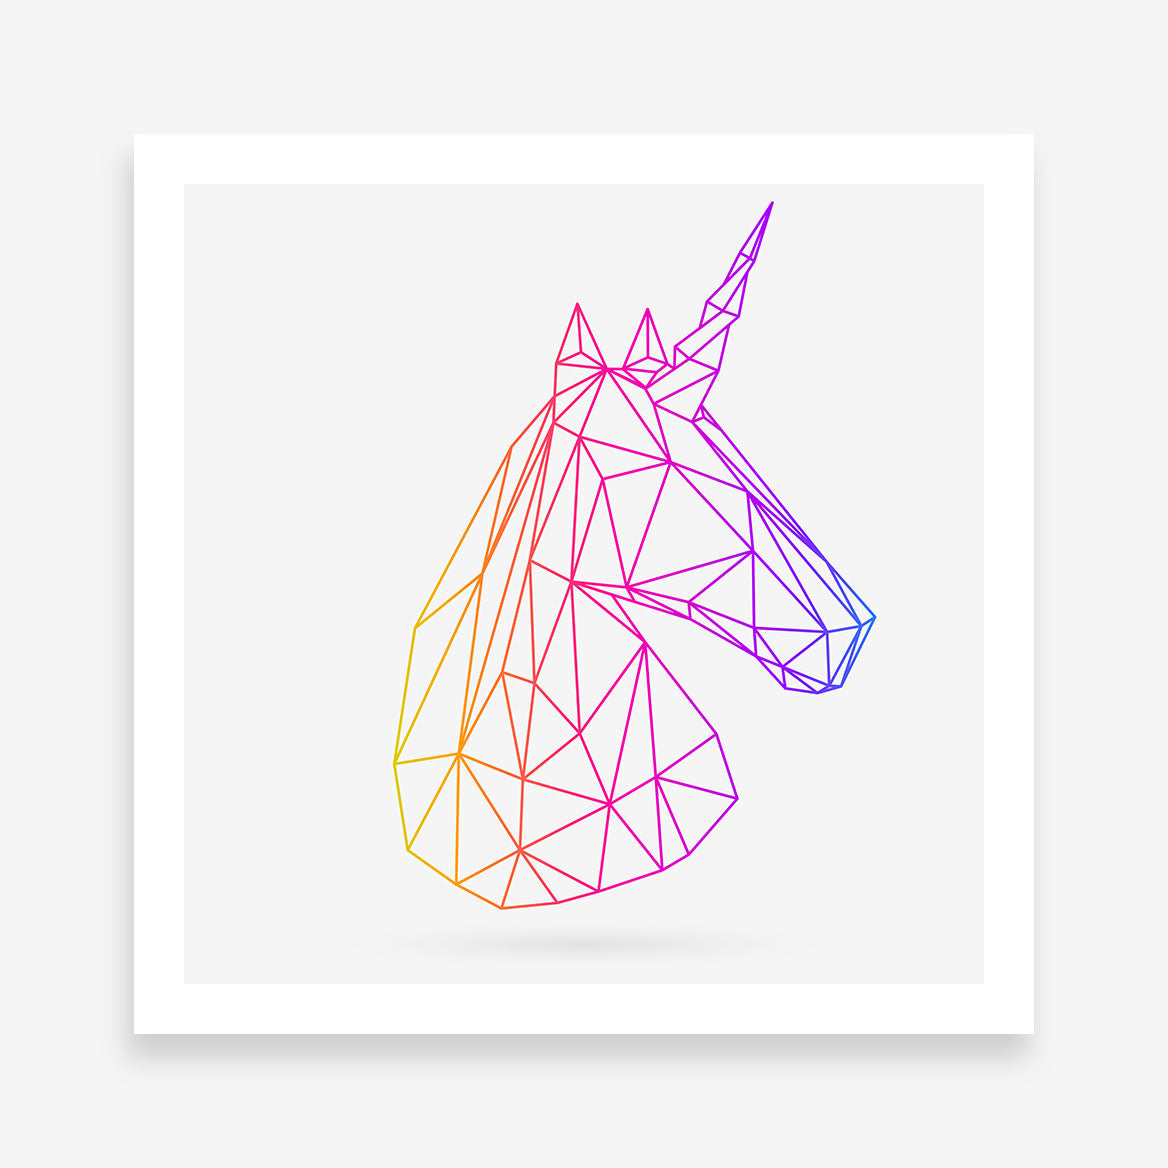 Geometric poster print with 3D unicorn, on light grey background.